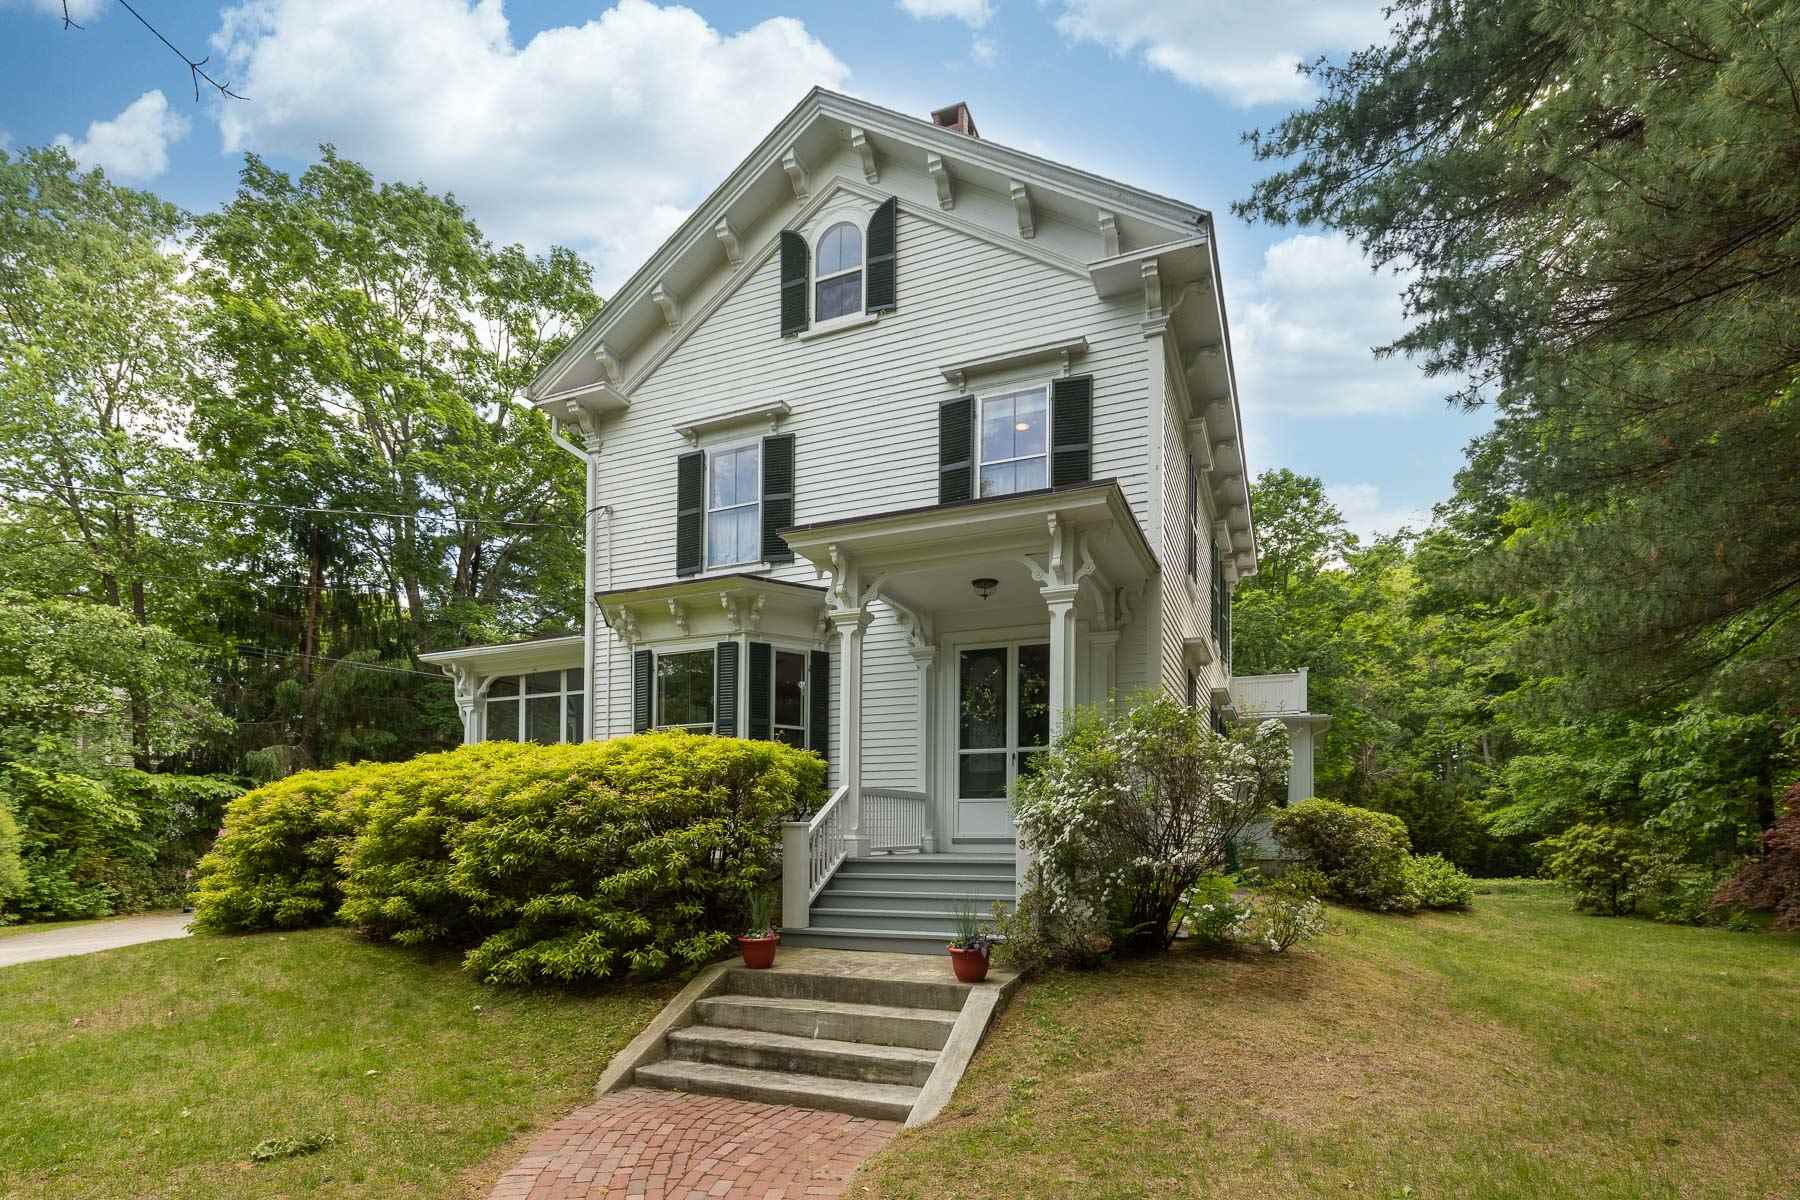 Photo of 33 Pine Street Exeter NH 03833